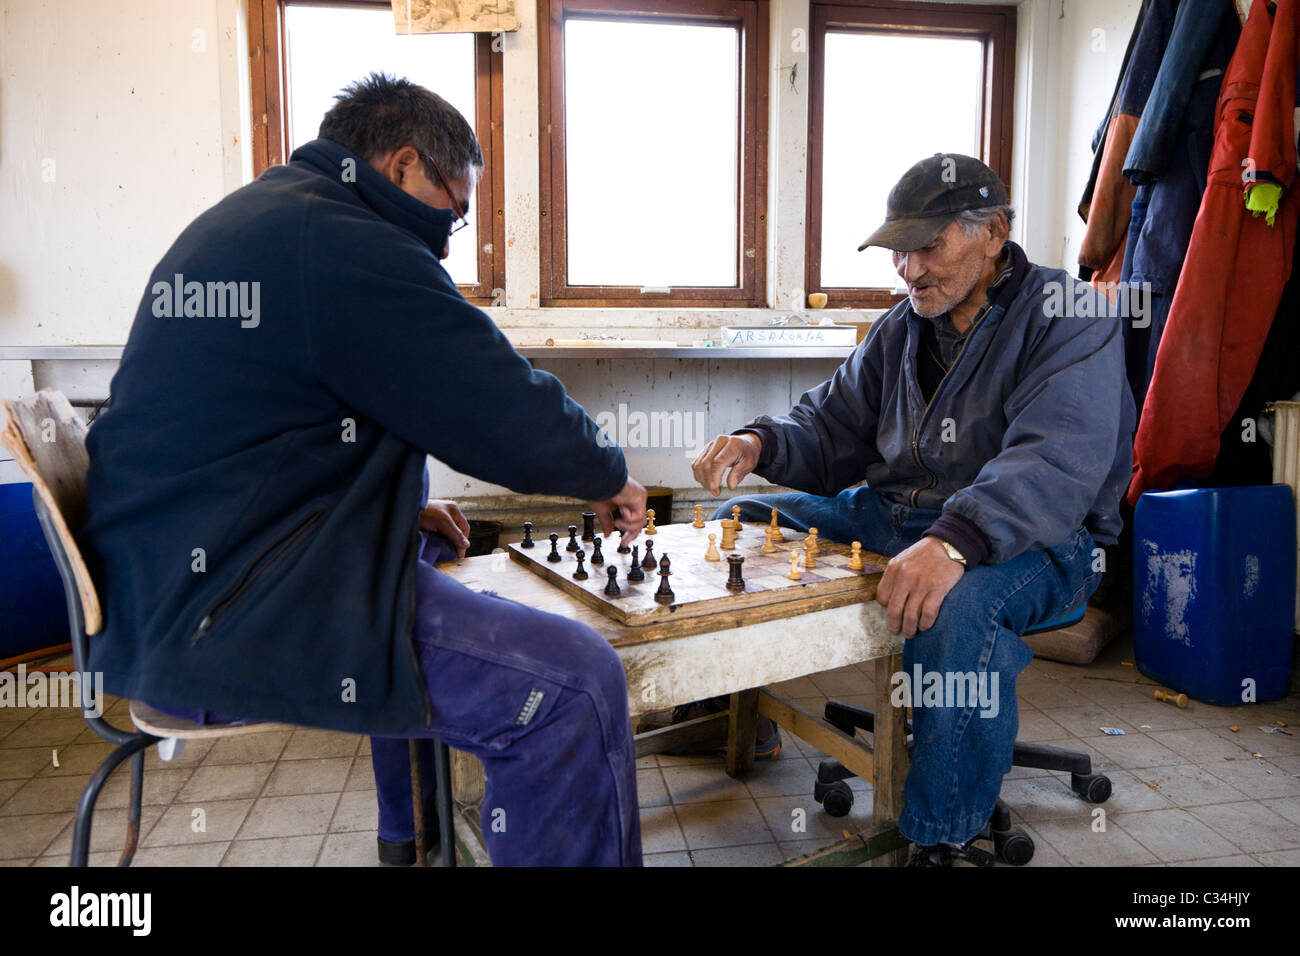 """Fishermen playing """"Checkers"""" board game. Also called """"Draughts"""" board game. Fishermen´s huts, Narsaq, South Greenland Stock Photo"""